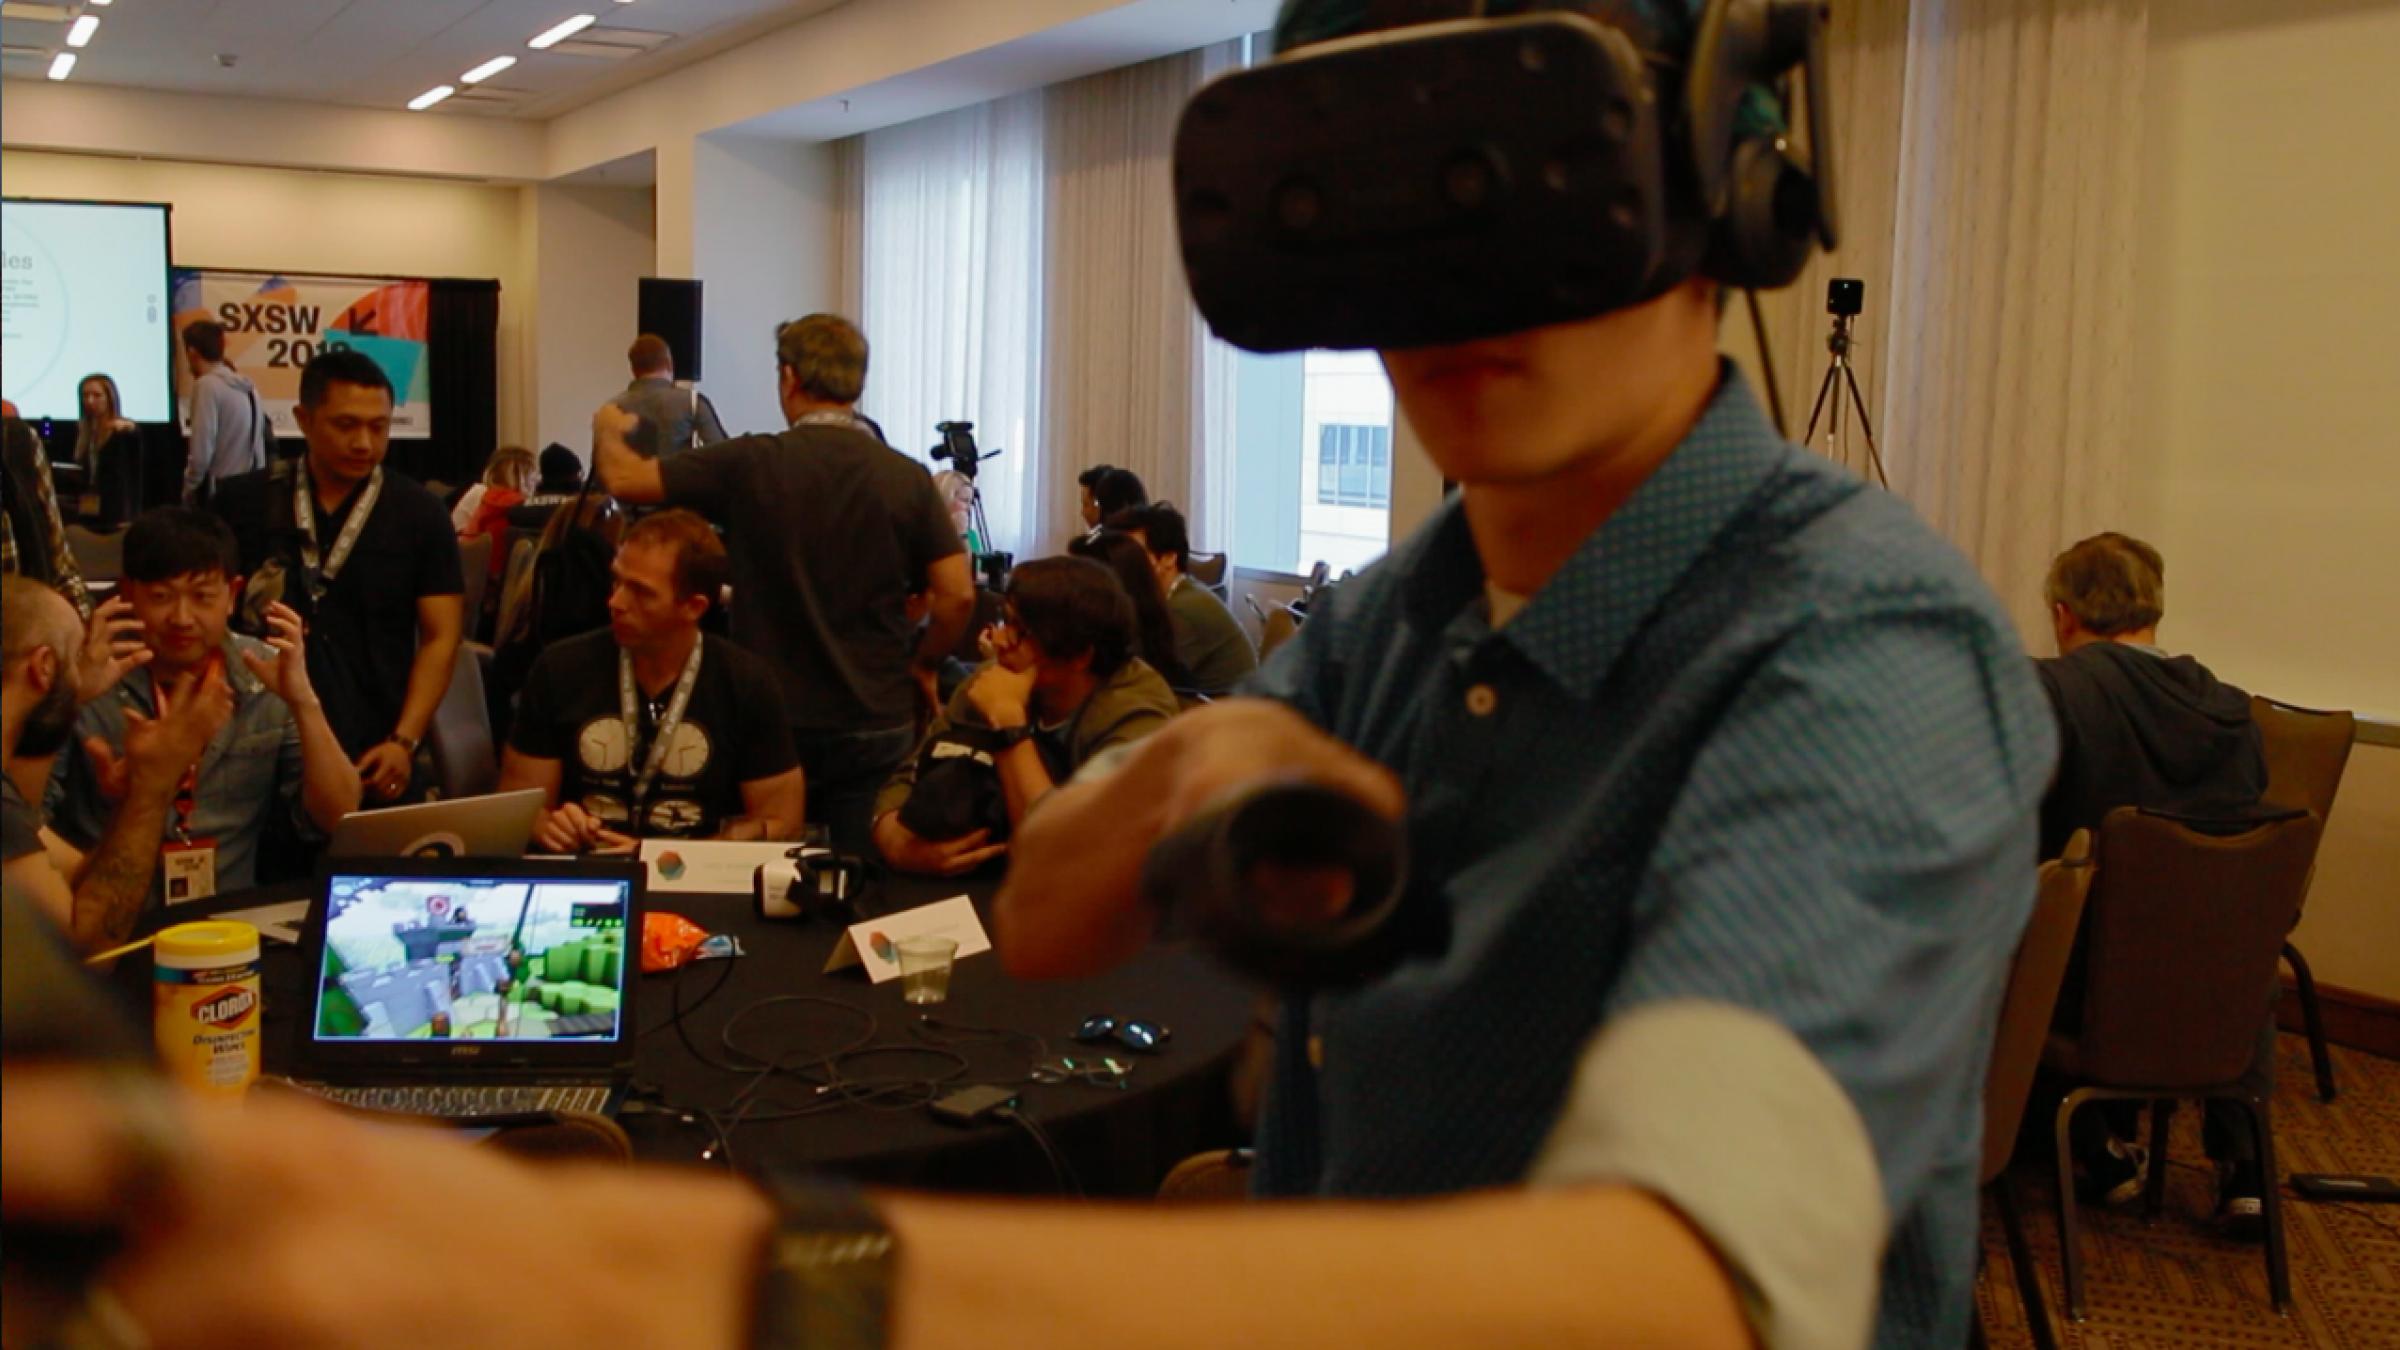 Interested in Making VR? Here's a Crash Course for Filmmakers